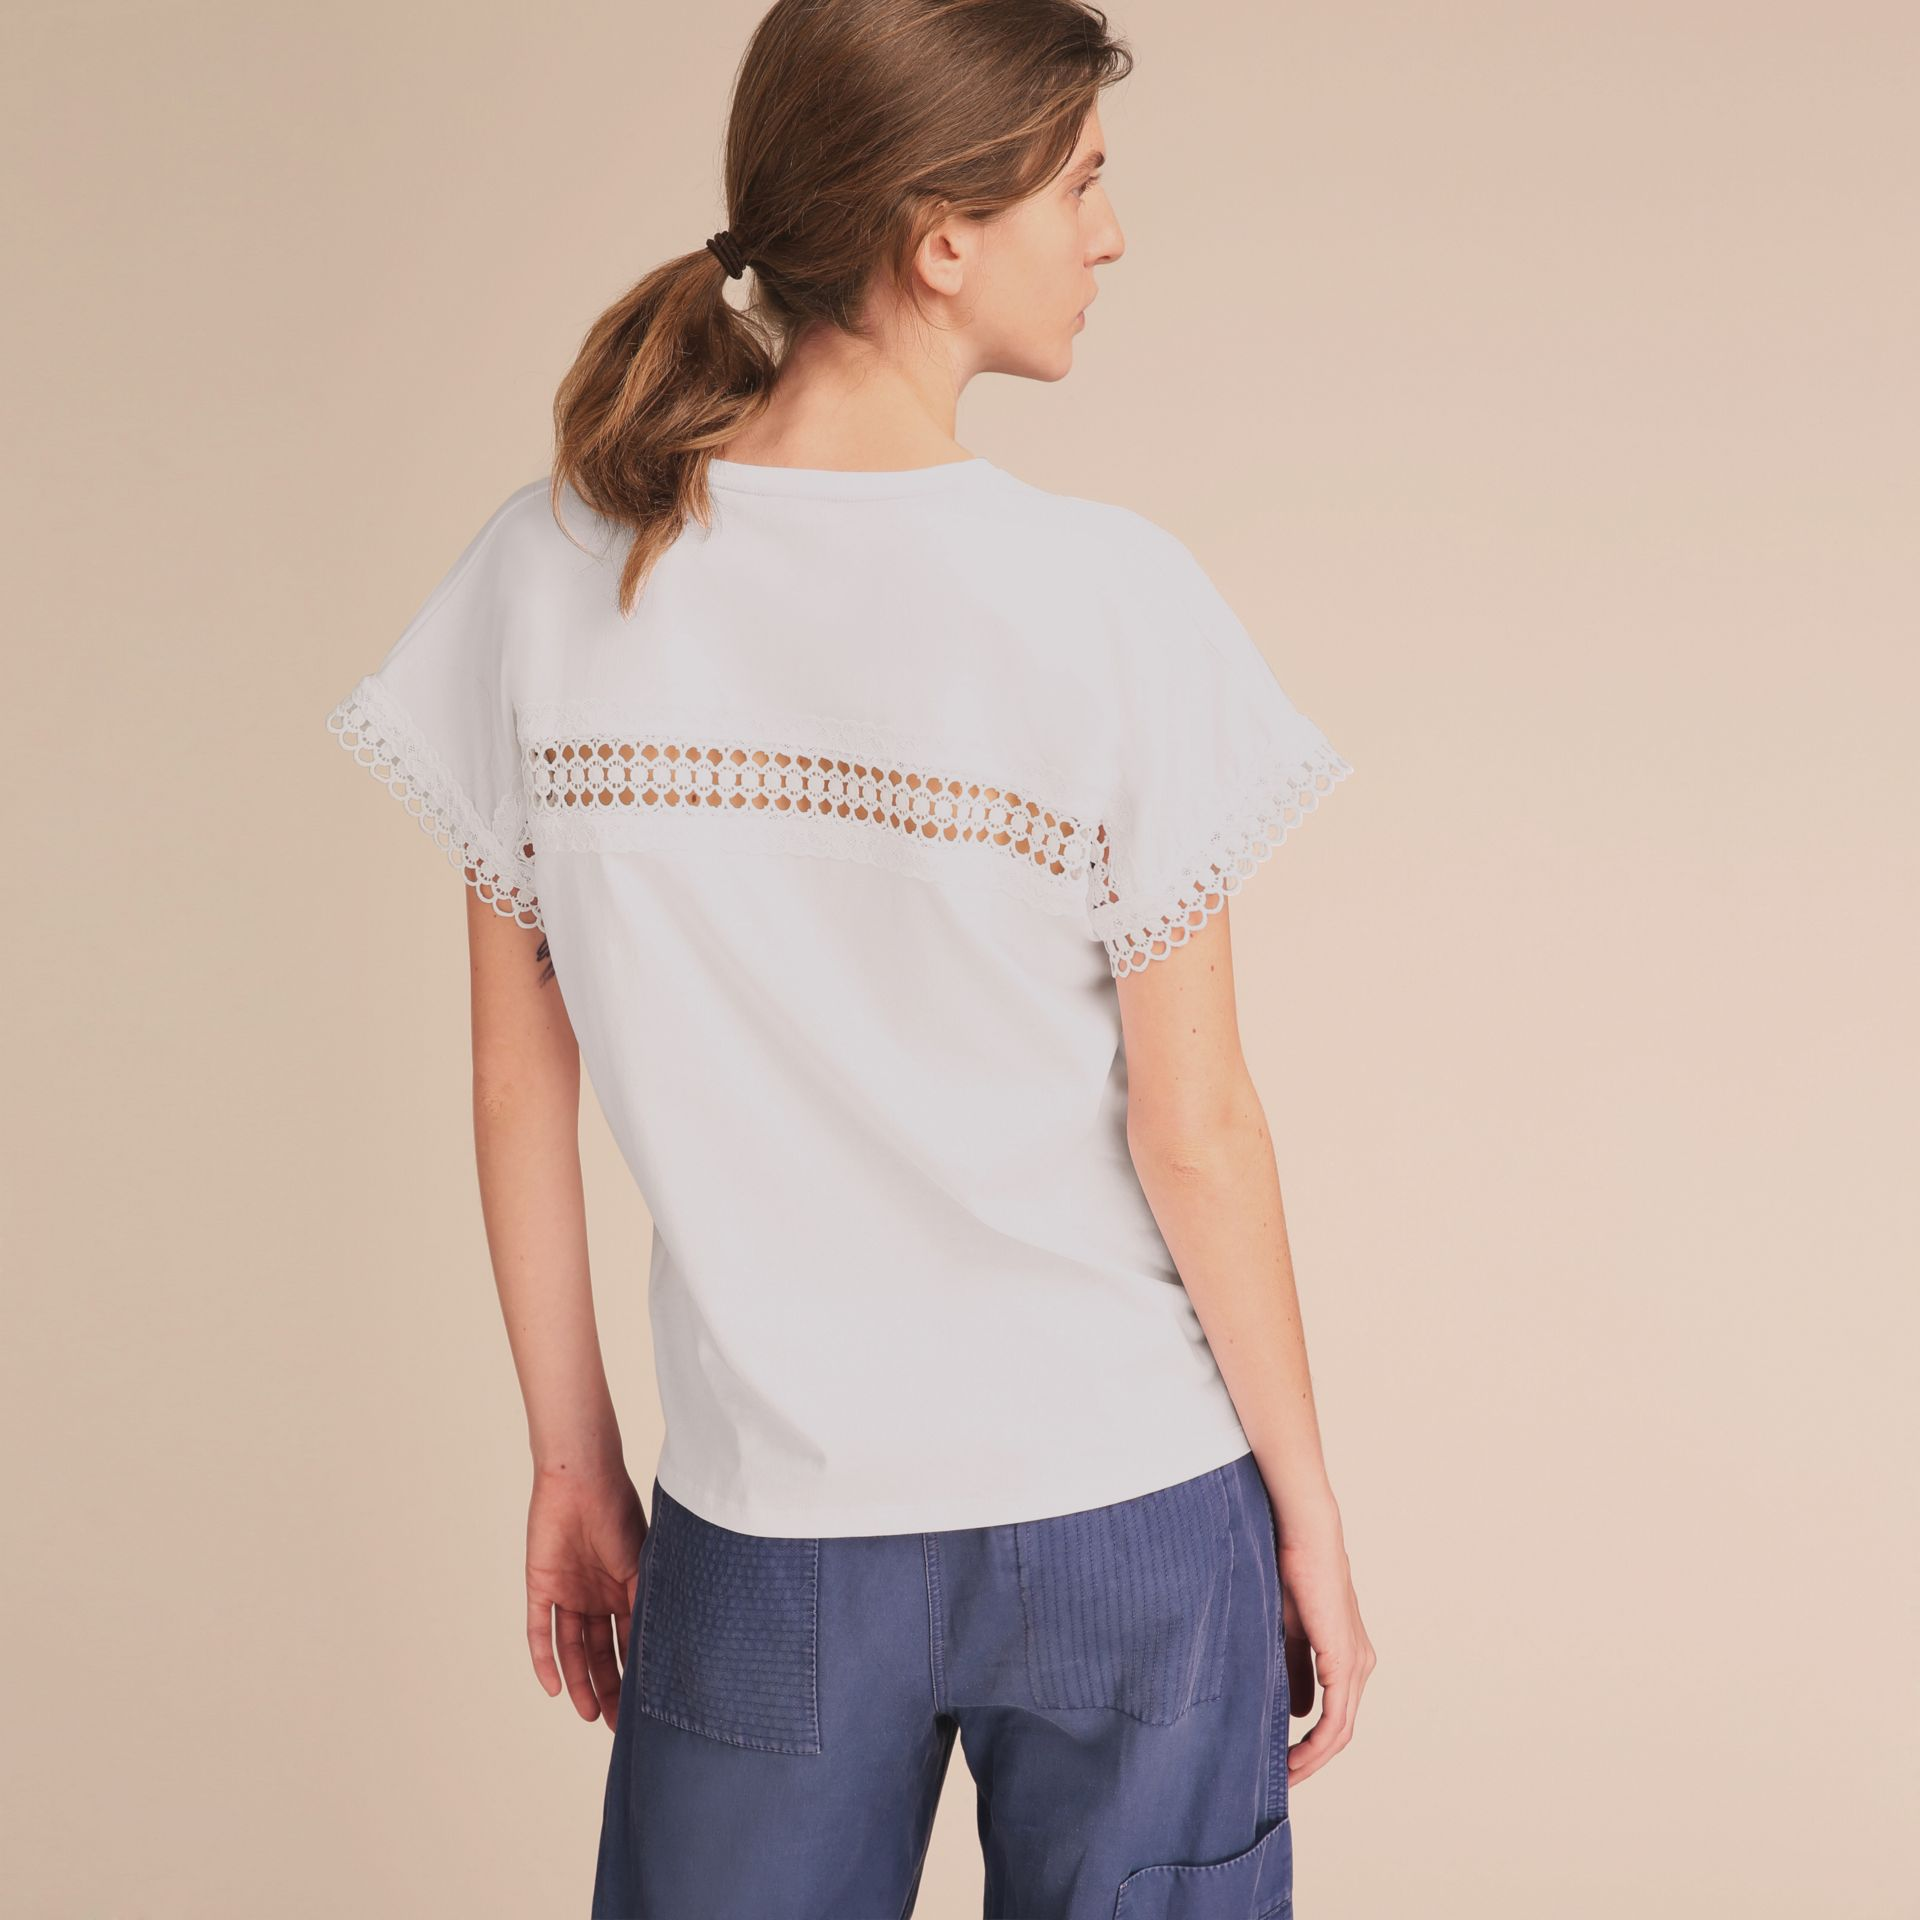 Lace Detail Cotton T-shirt White - gallery image 3